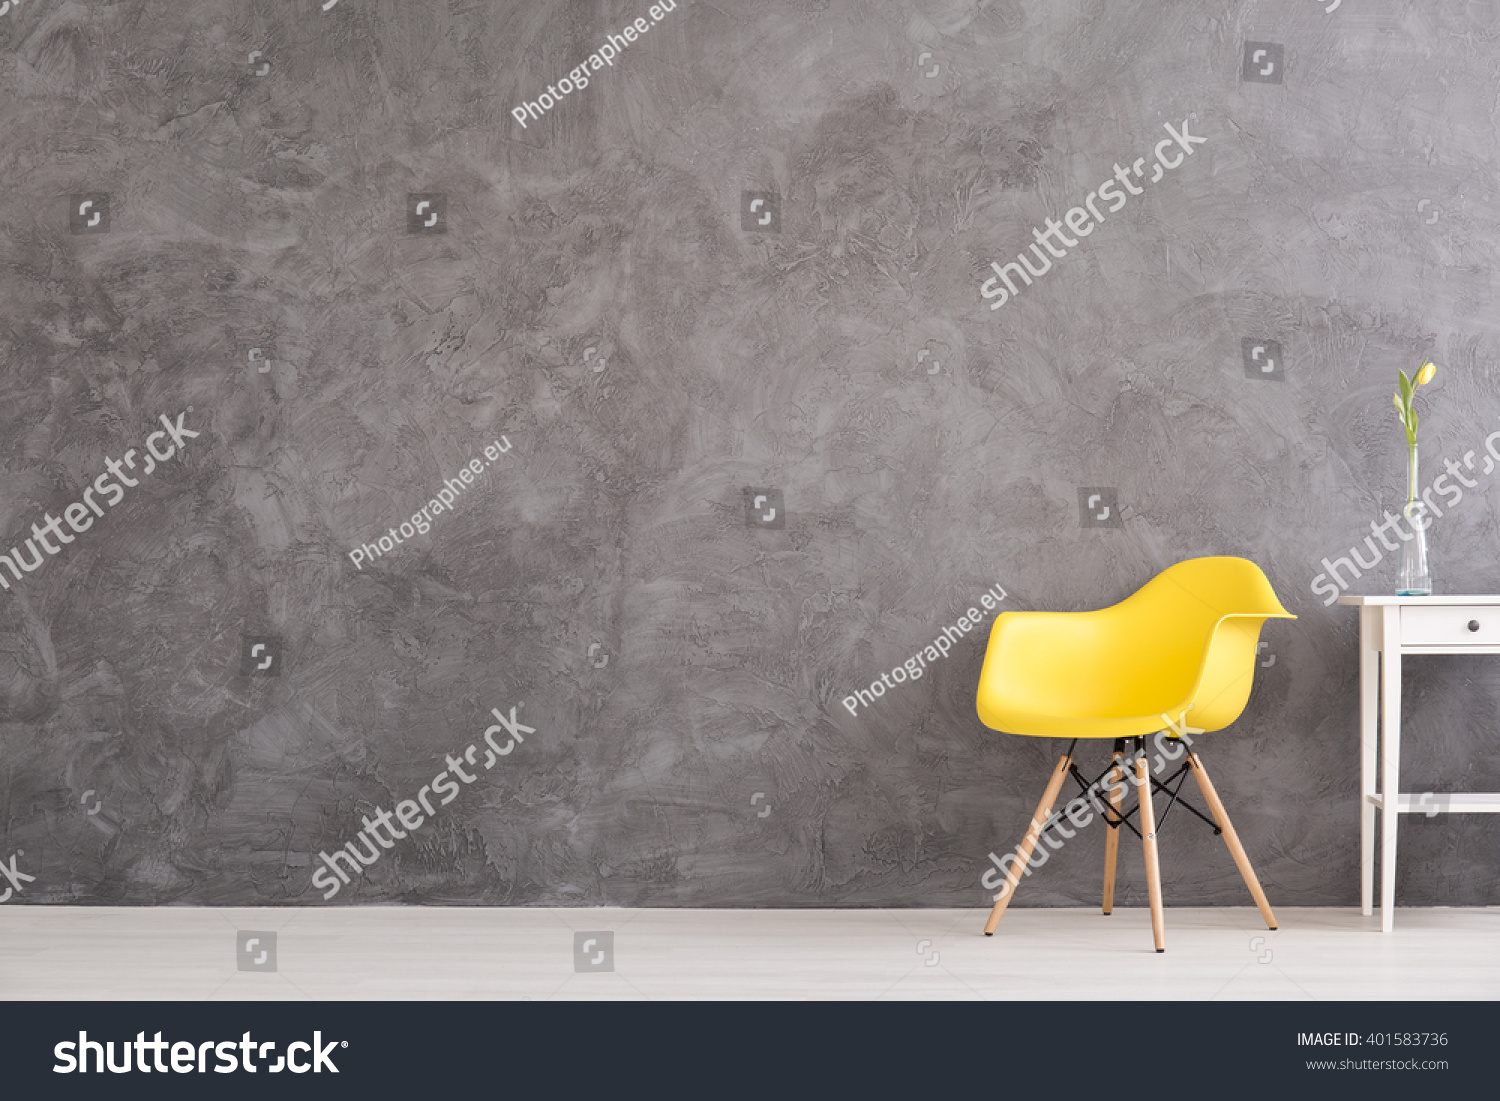 New Yellow Chair And Small, Decorative Table Standing In Interior With Grey  Wall